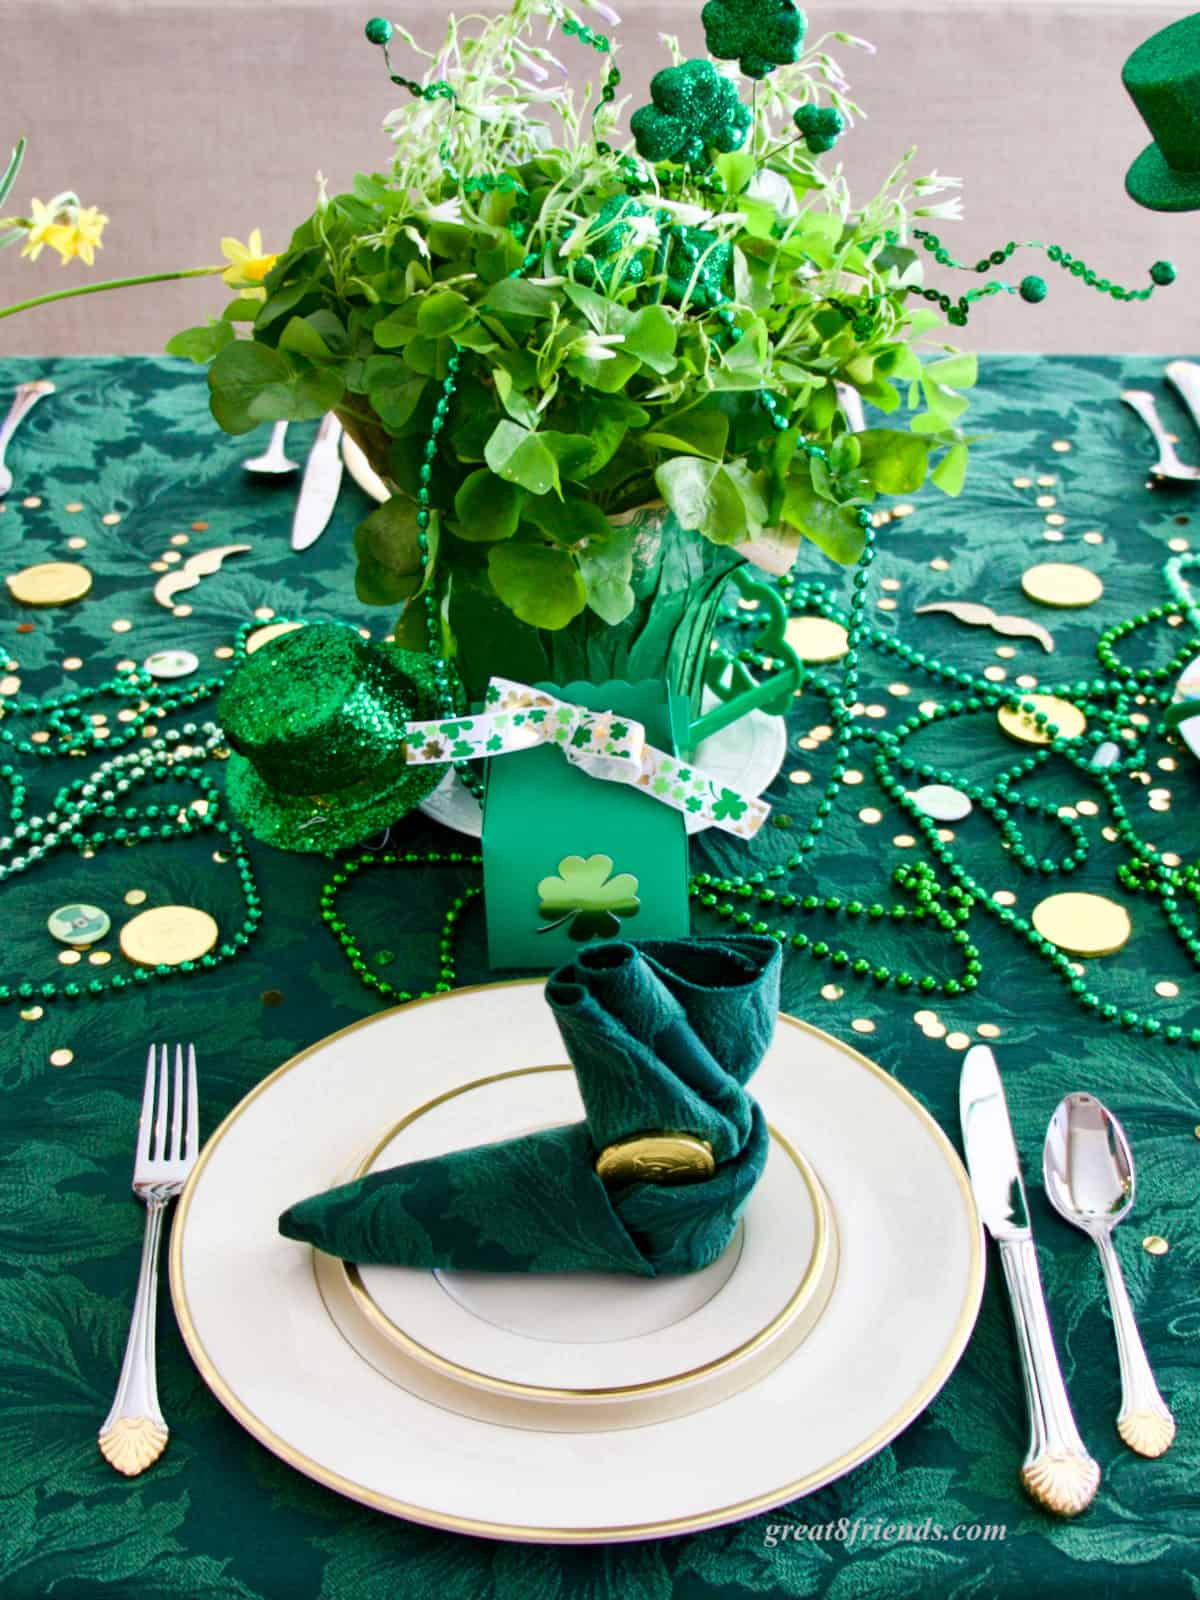 A St. Patrick's Day place setting with gold rimmed dishes, a shamrock centerpiece and the napkin folded in the shape of a leprechaun boot.